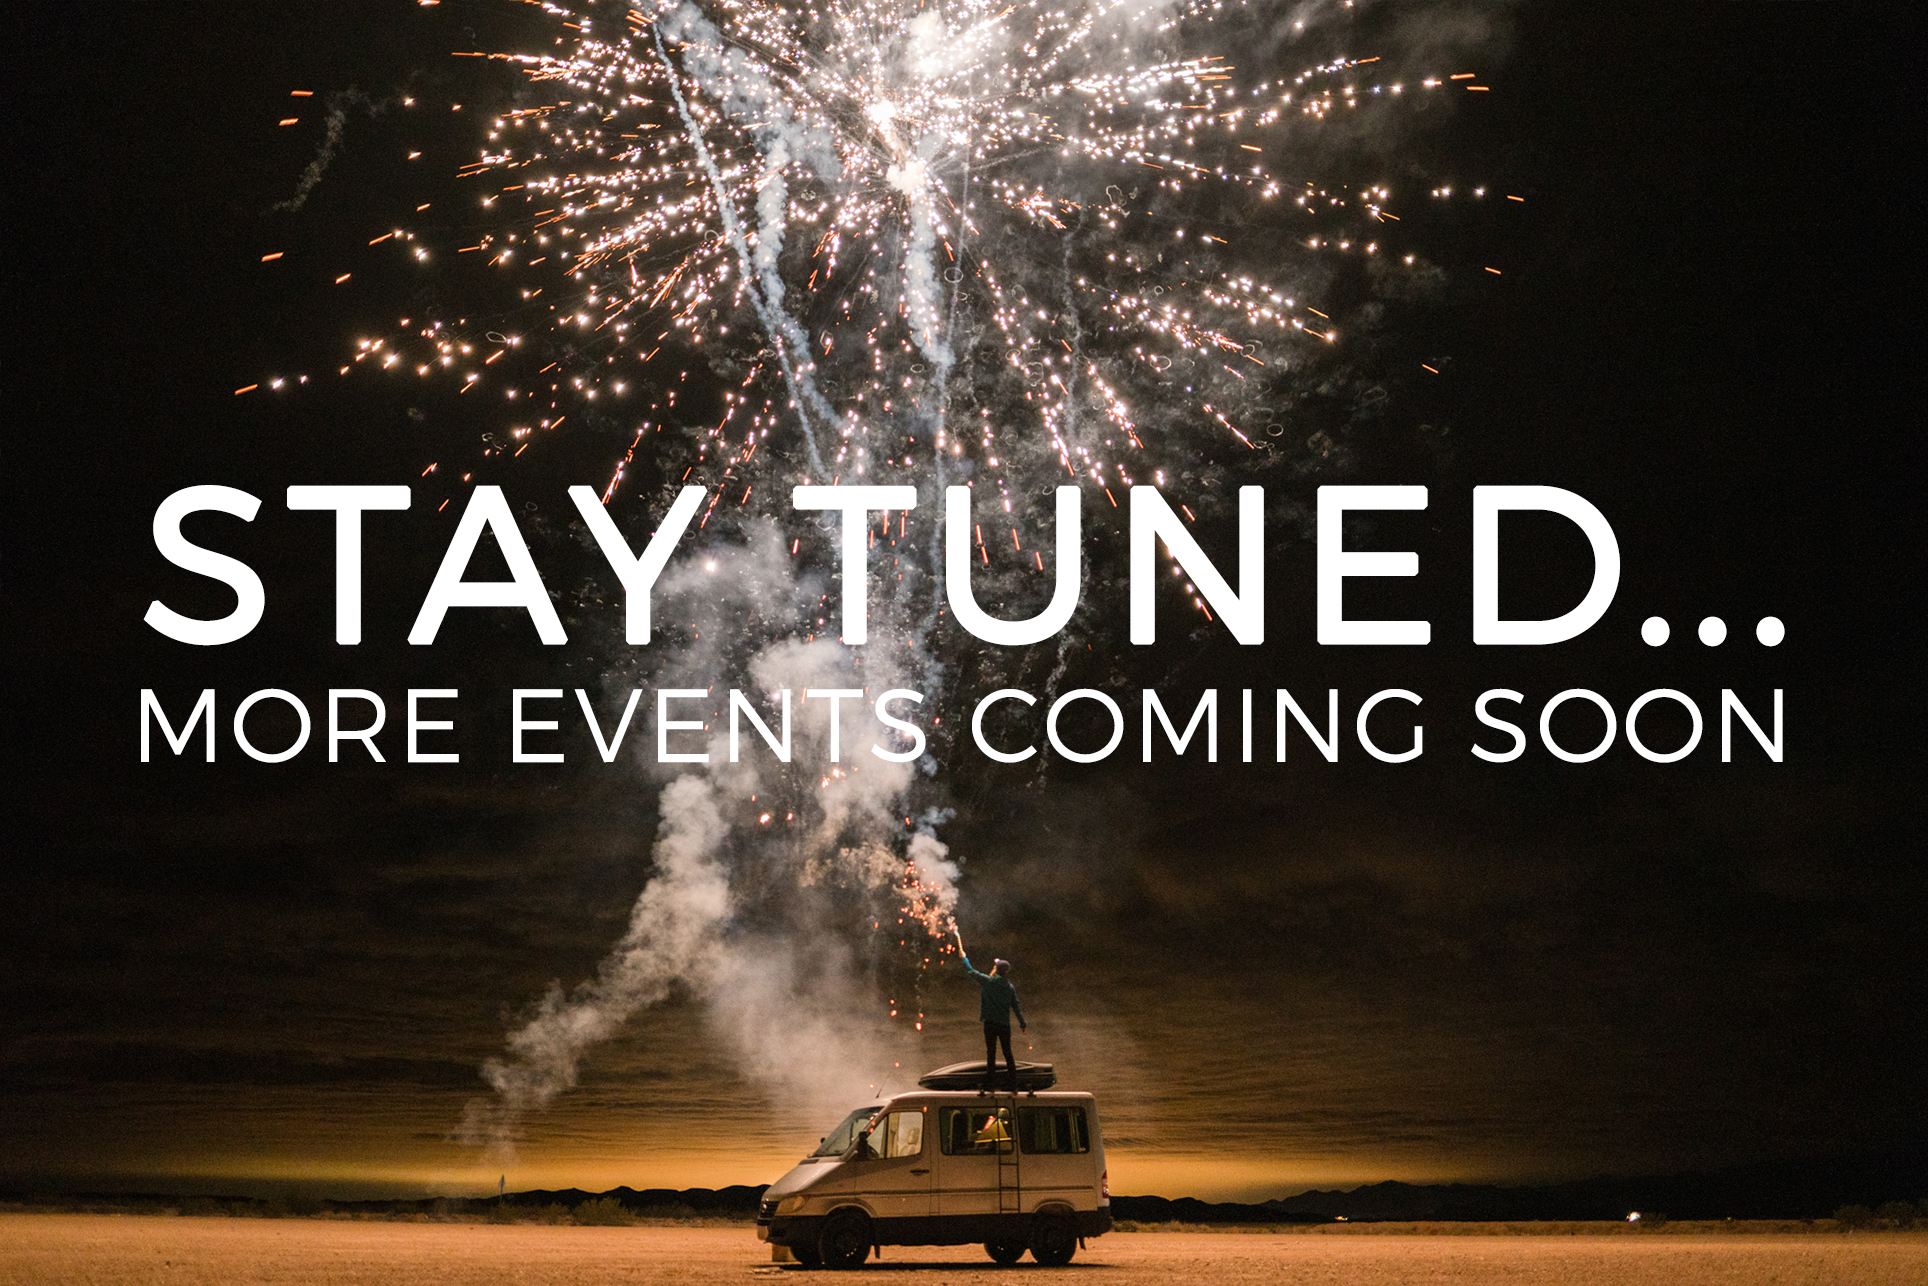 STAY_TUNED_EVENTS_1_2018.jpg